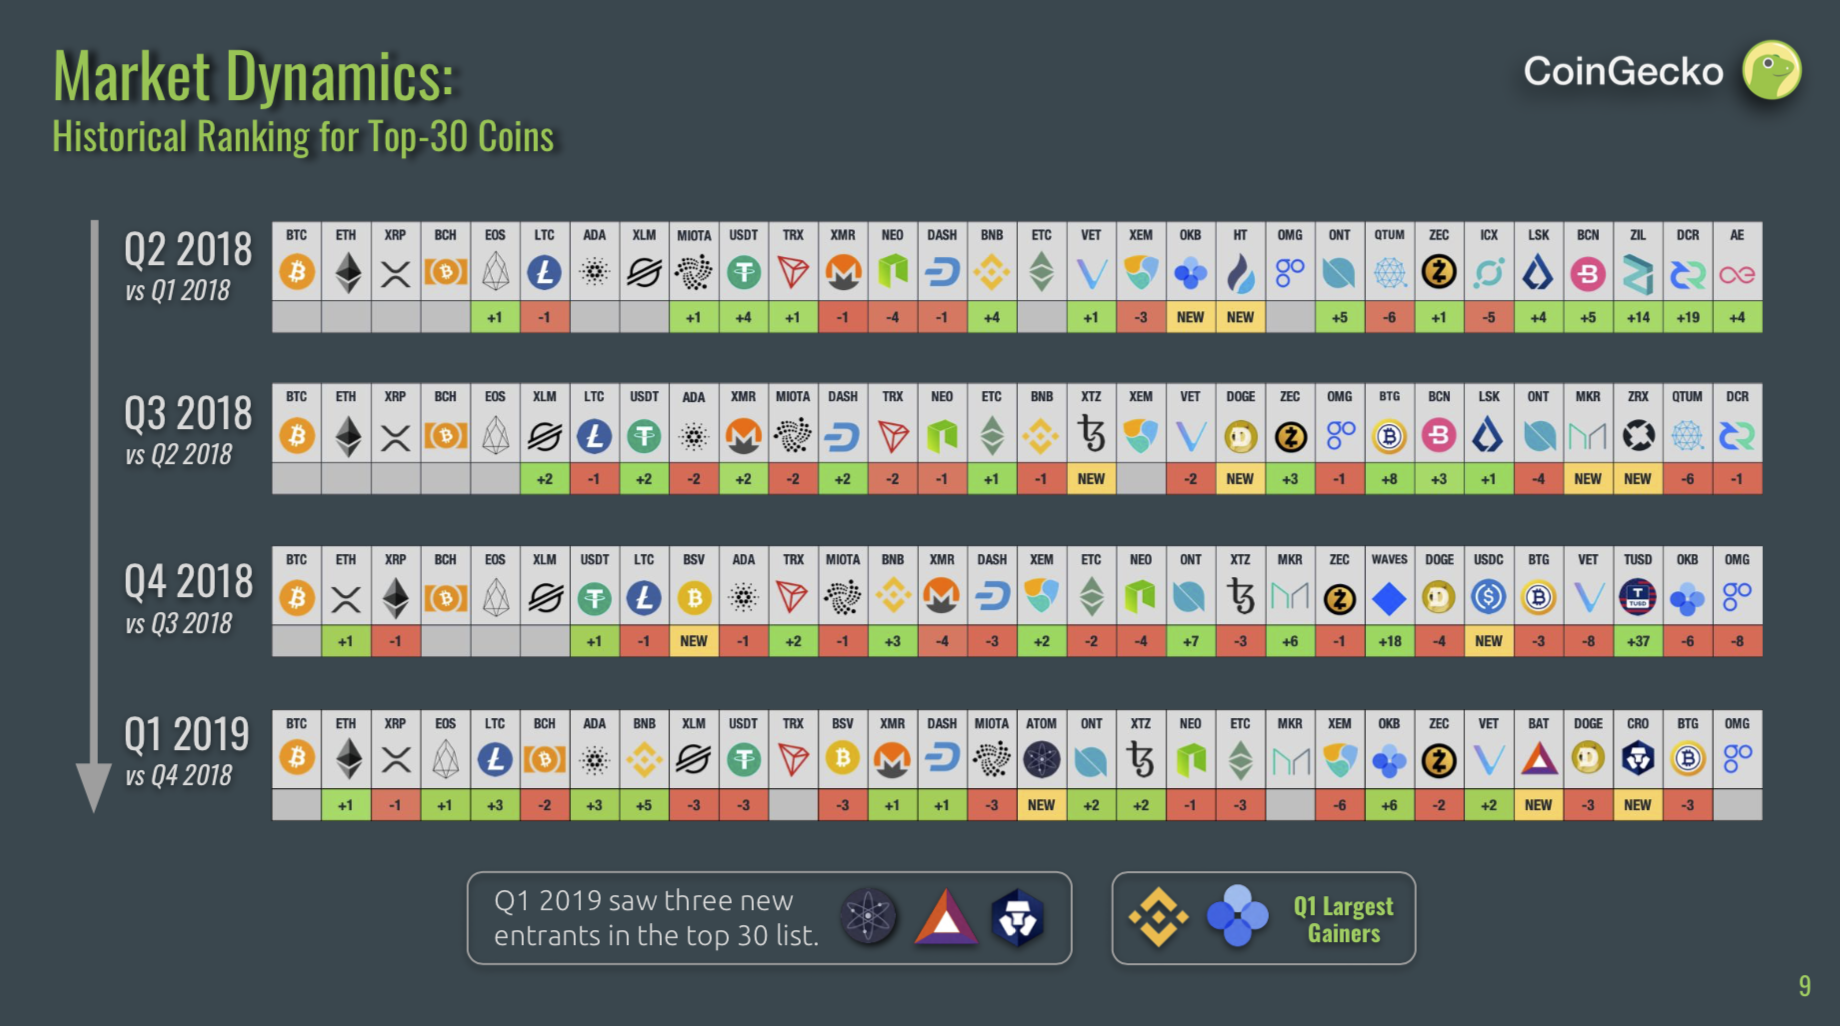 CoinGecko 2019 Q1 Top 30